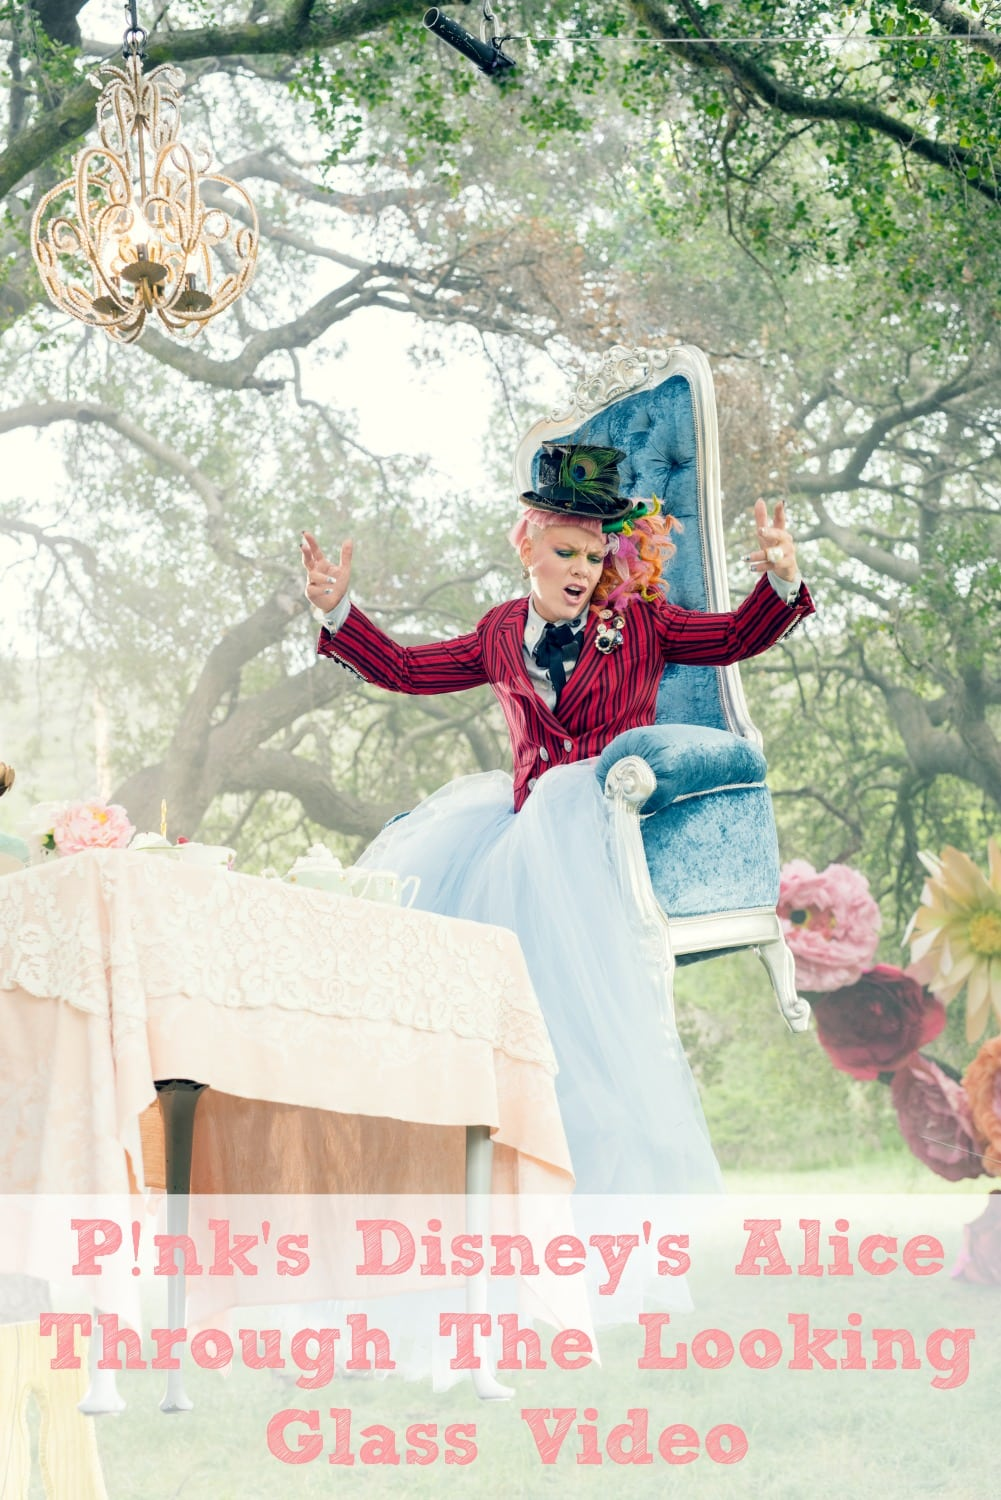 P!ink's Disney's Alice Through The Looking Glass Video #ThroughTheLookingGlass